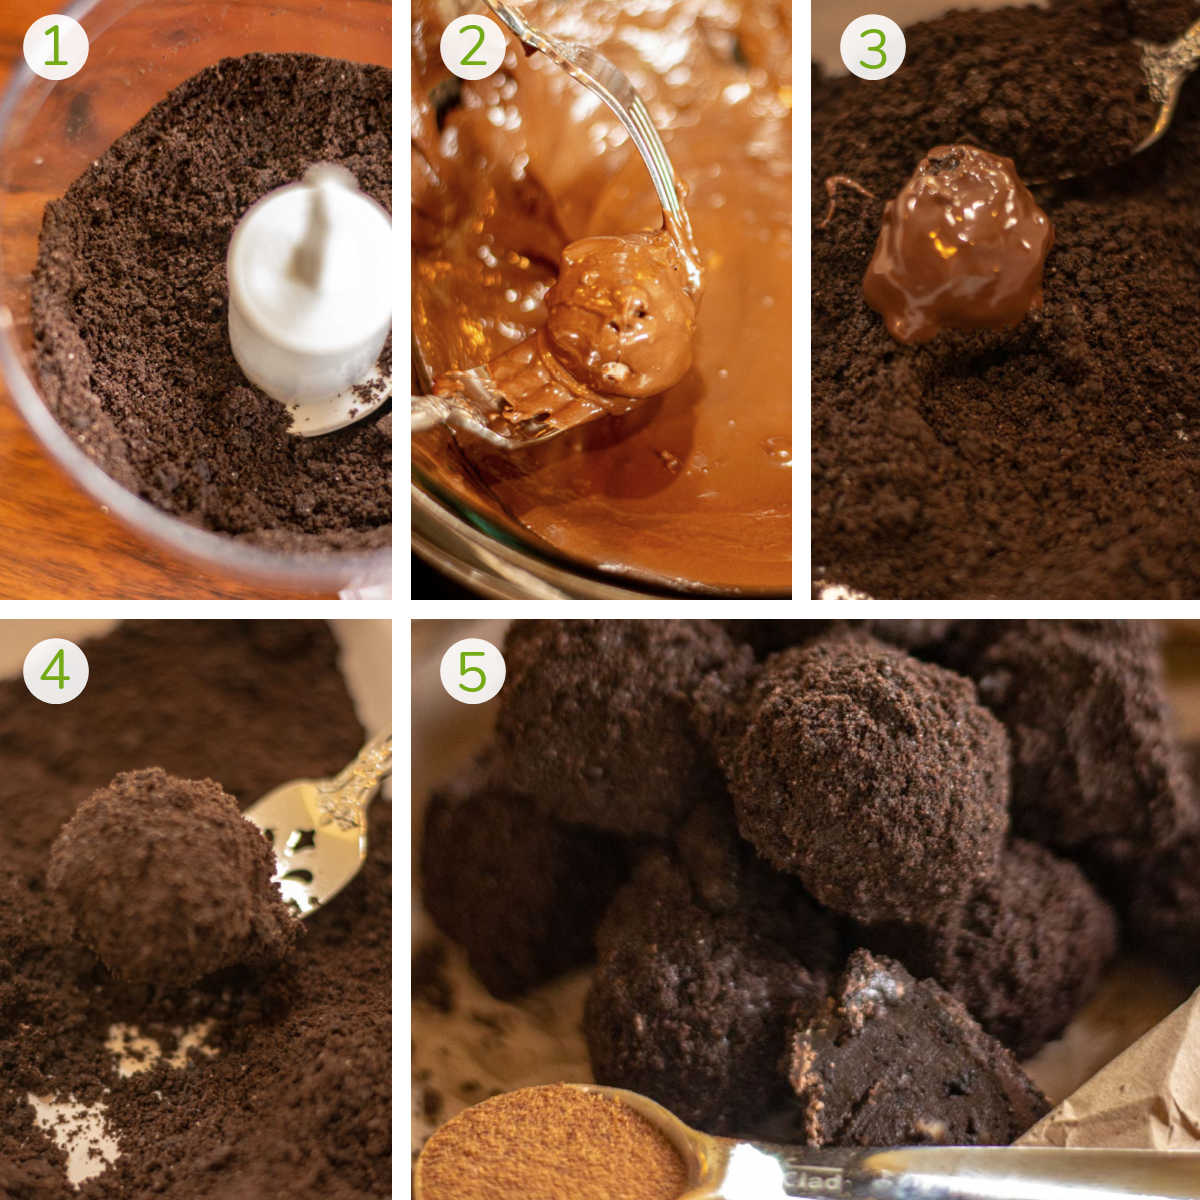 process photos showing how to mix the ingredients in the food processor, form them into balls, and dip in chocolate and oreos.